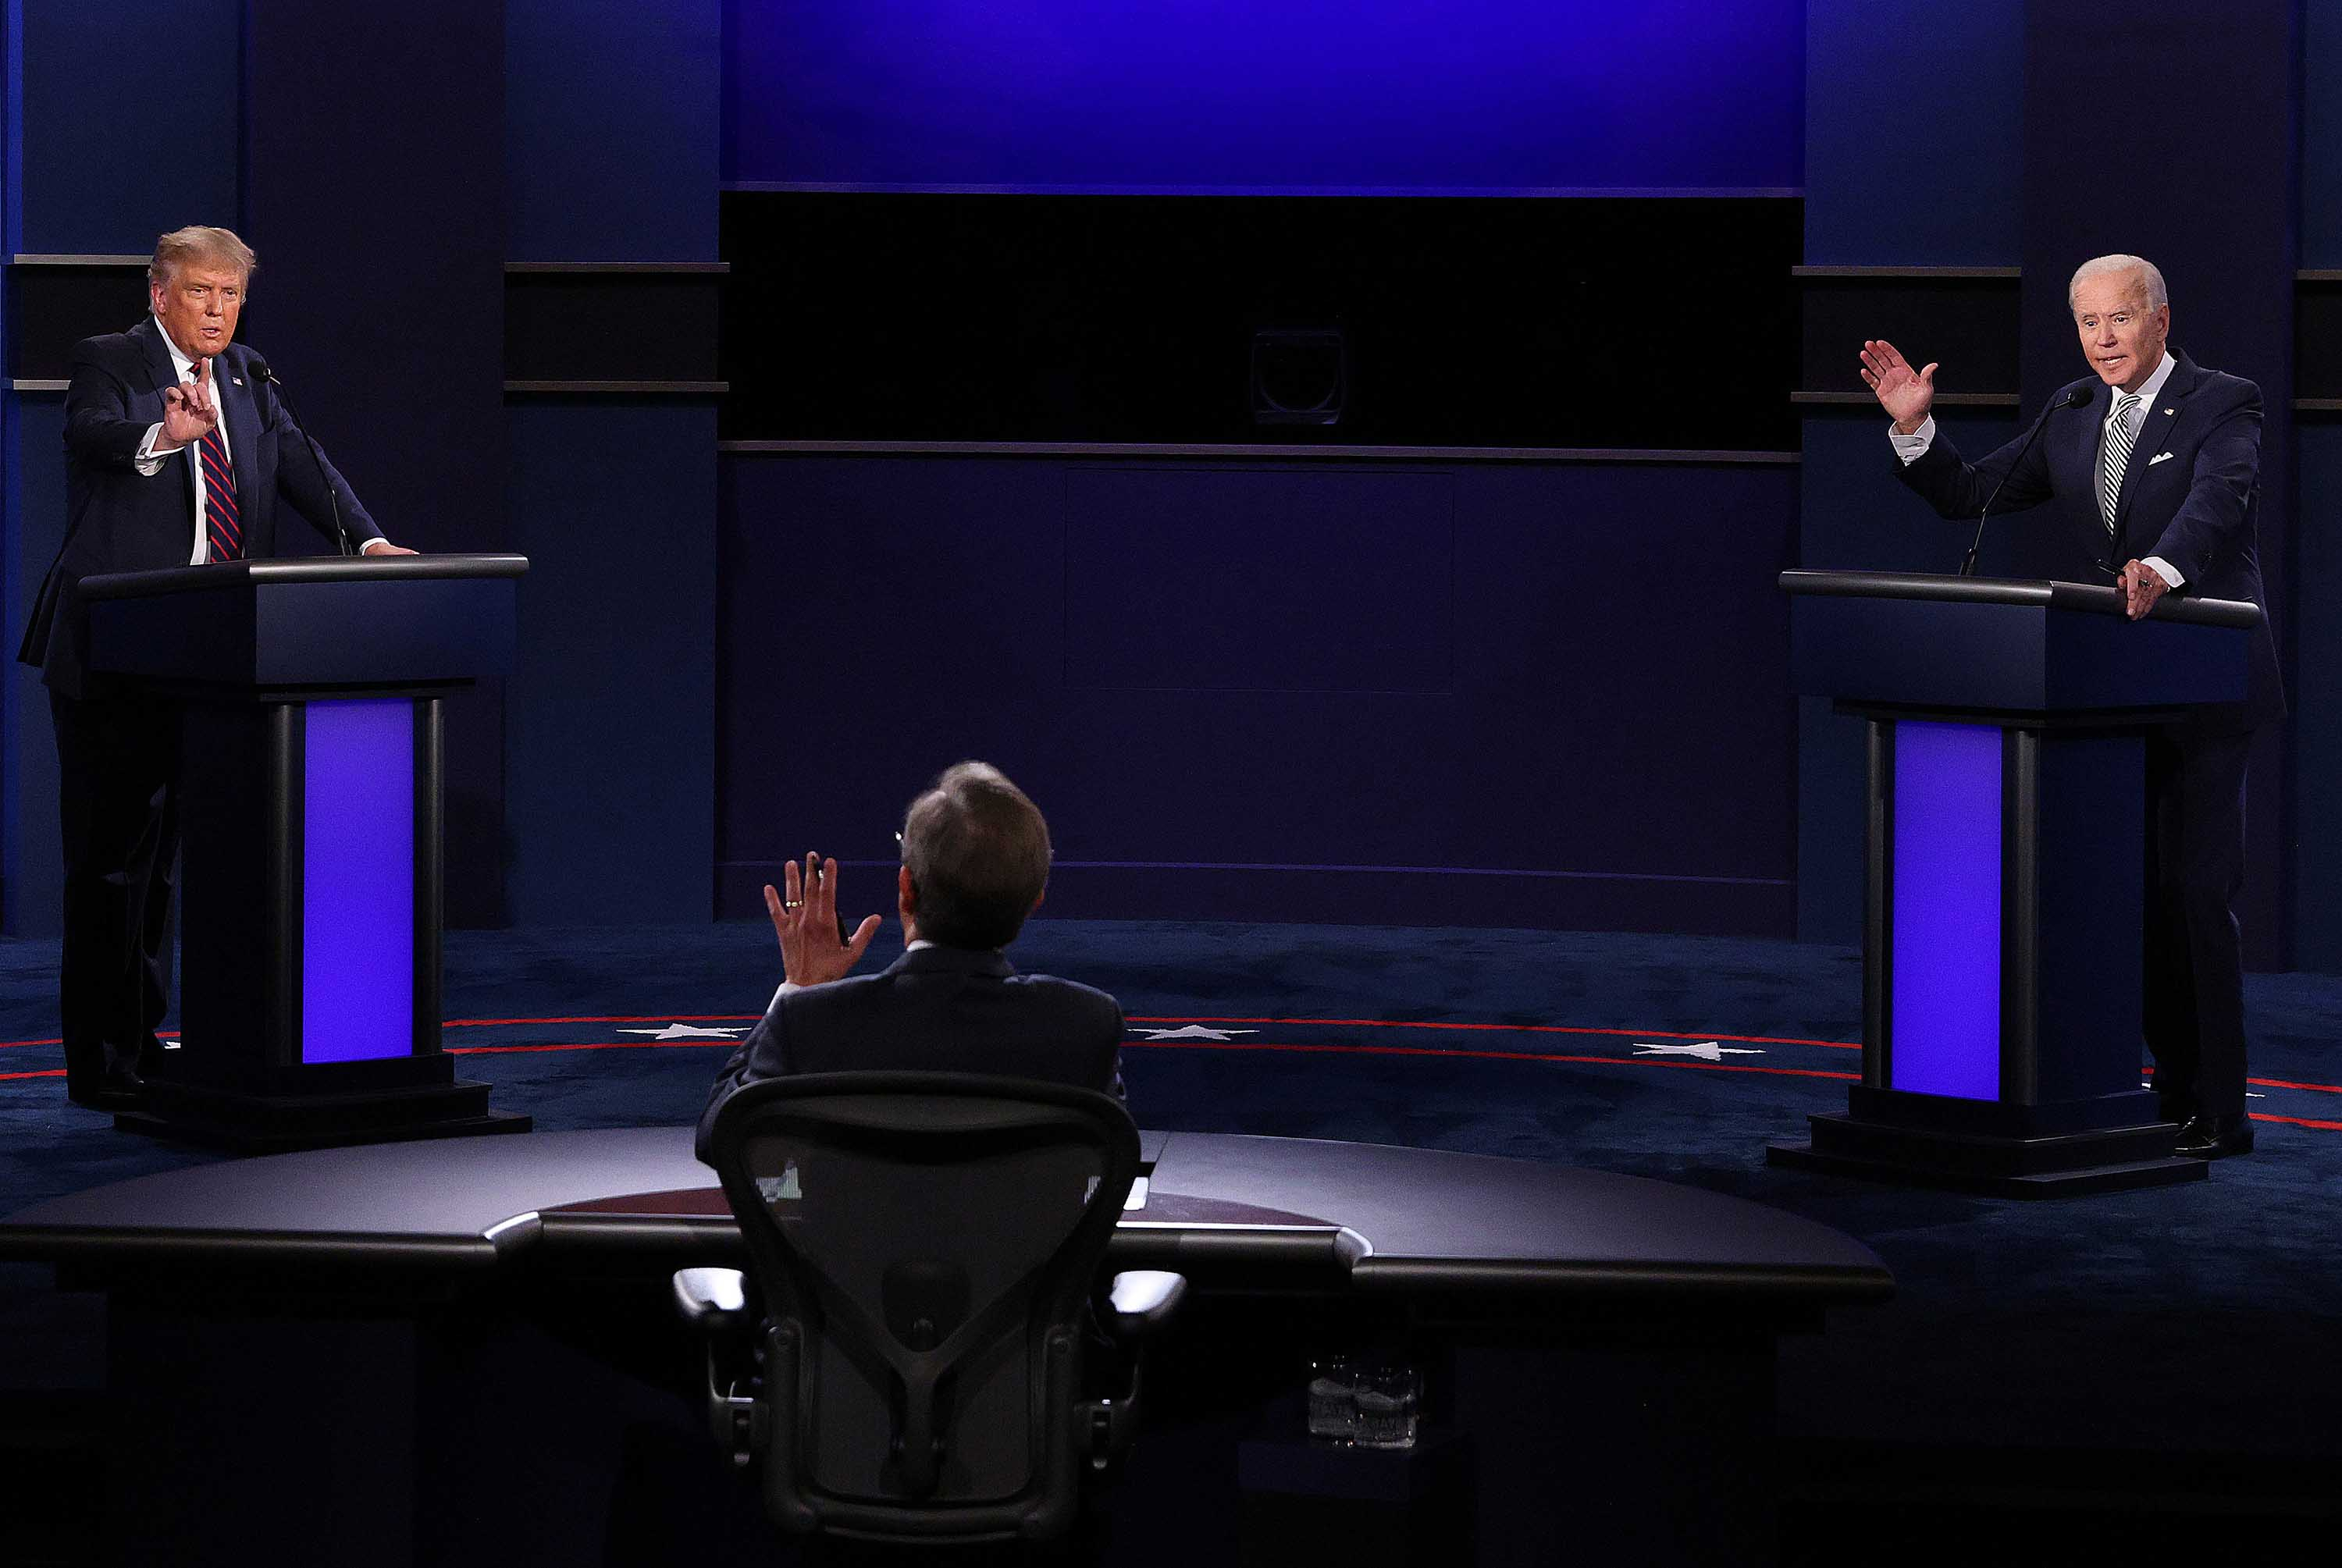 U.S. President Donald Trump and Democratic presidential nominee Joe Biden participate in the first presidential debate in Cleveland, Ohio, on September 29.